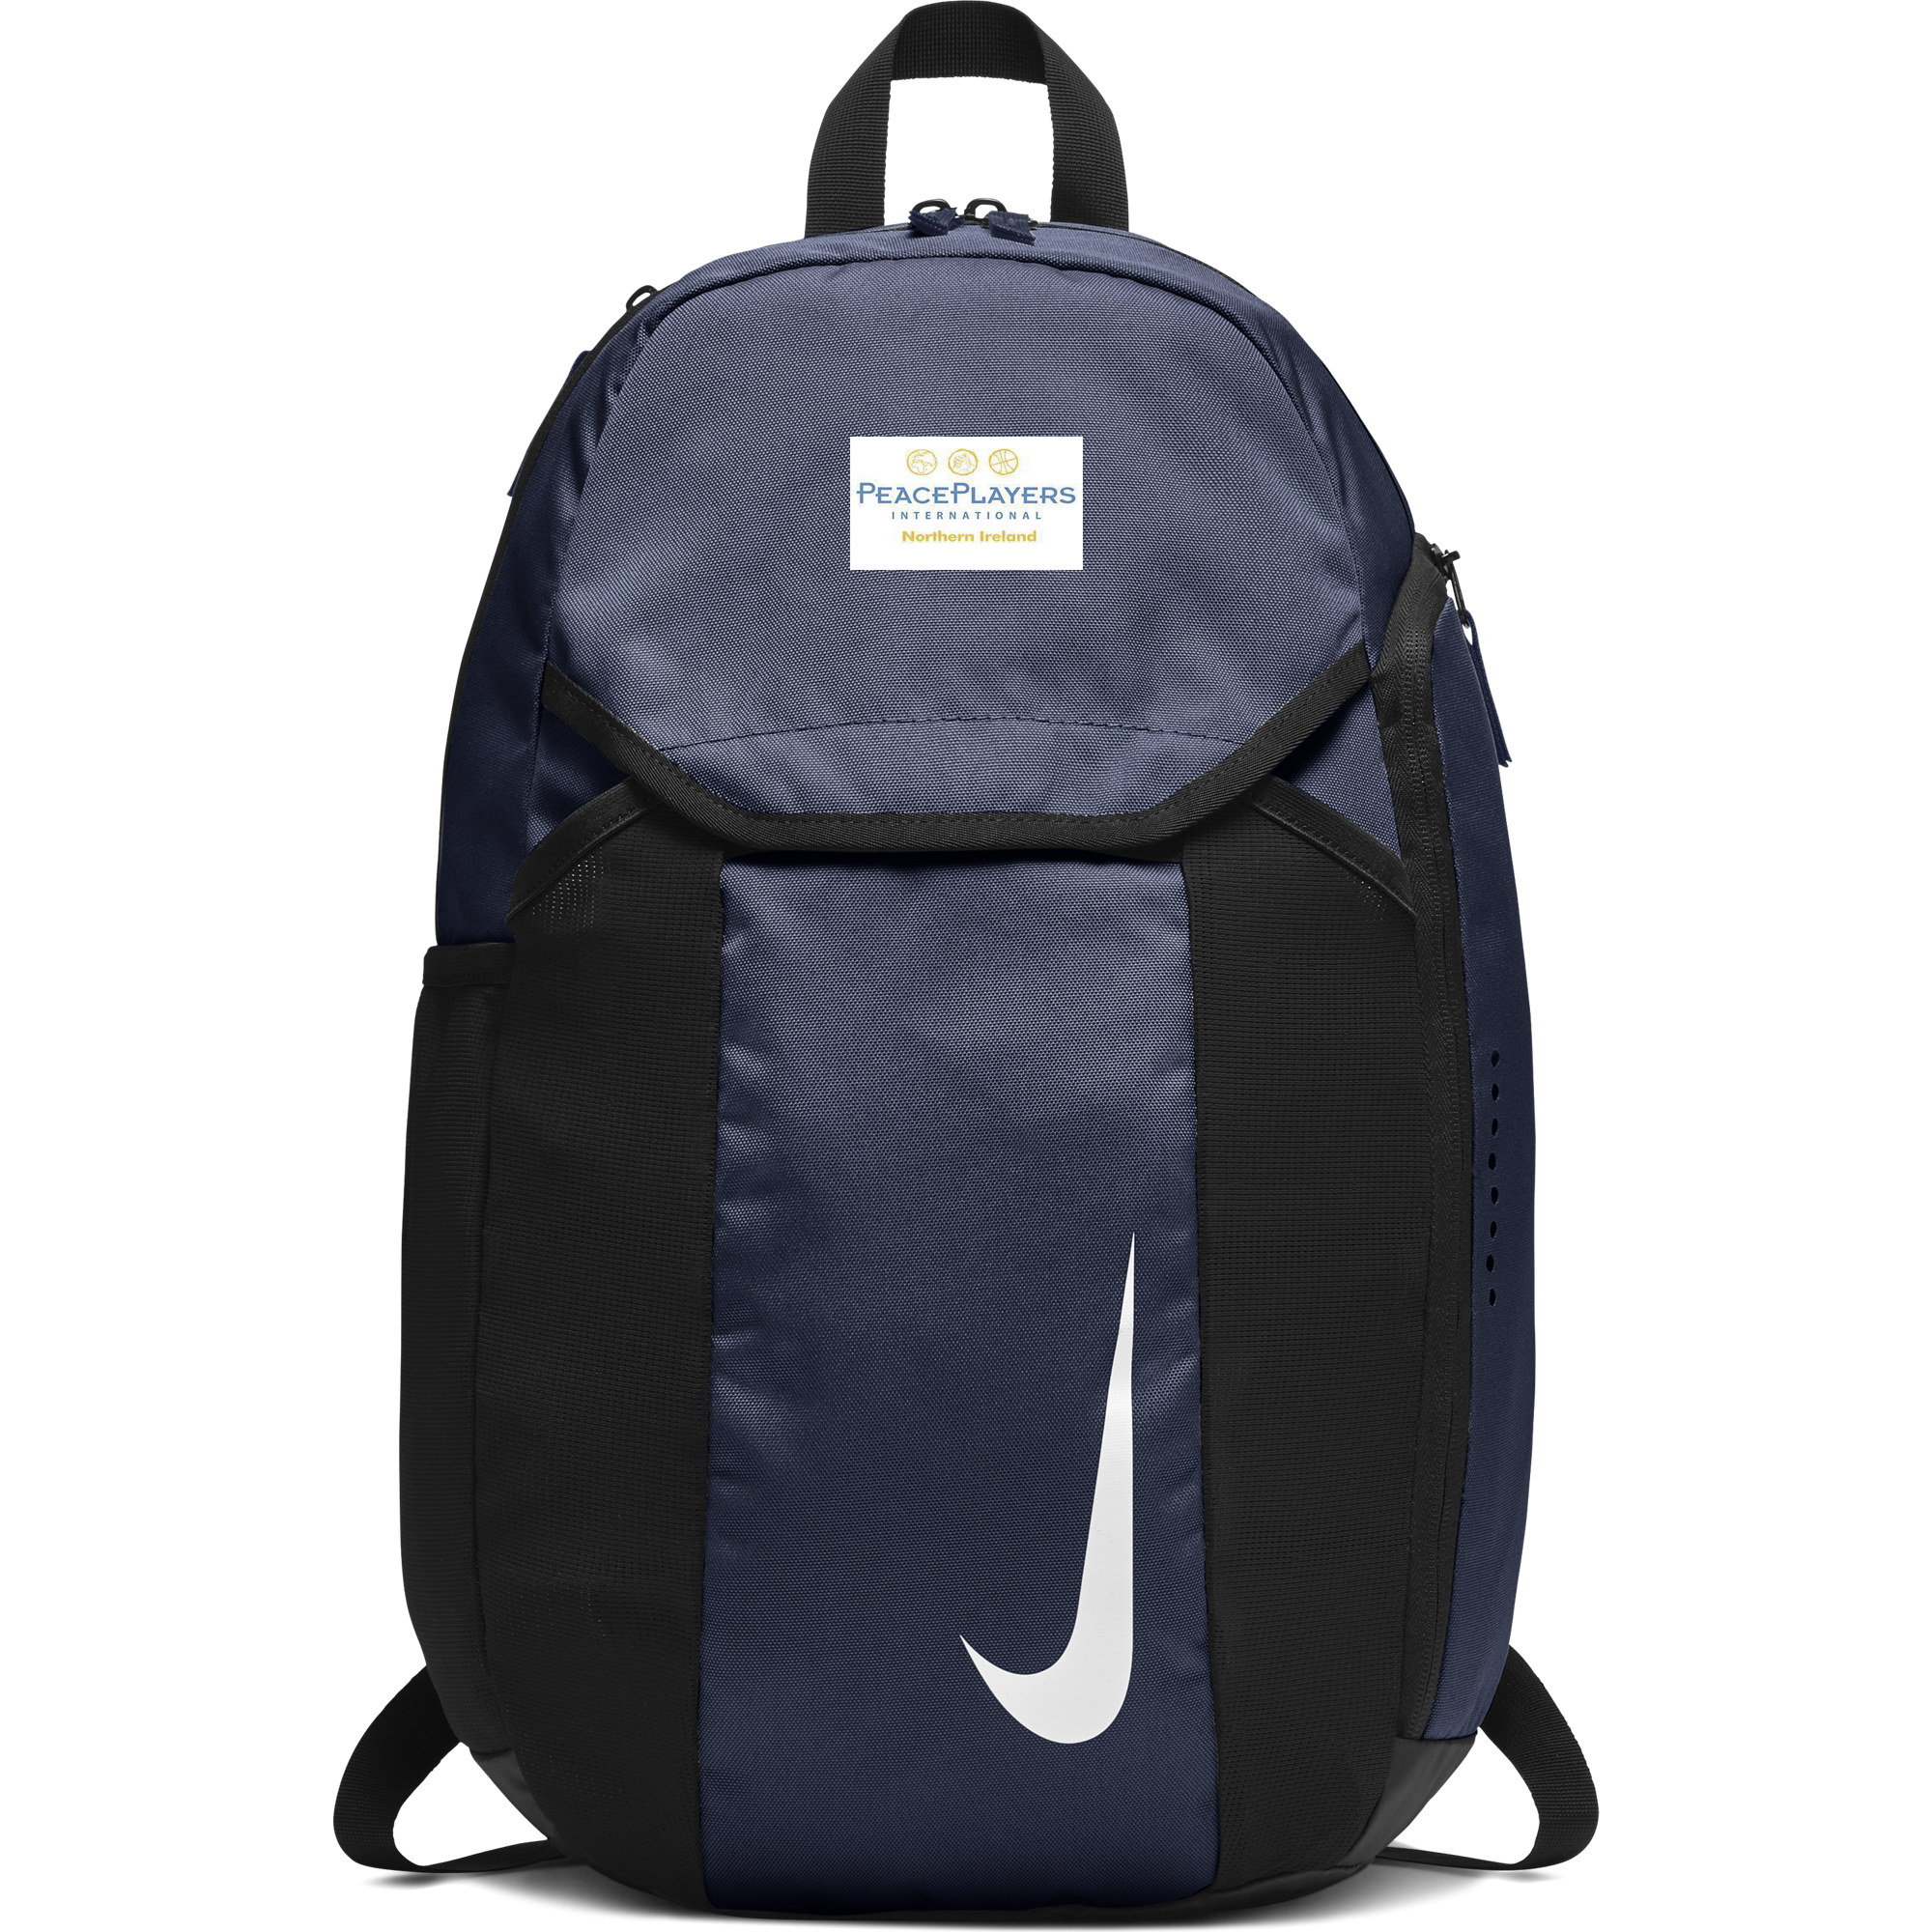 peace players back pack  2  38086 p